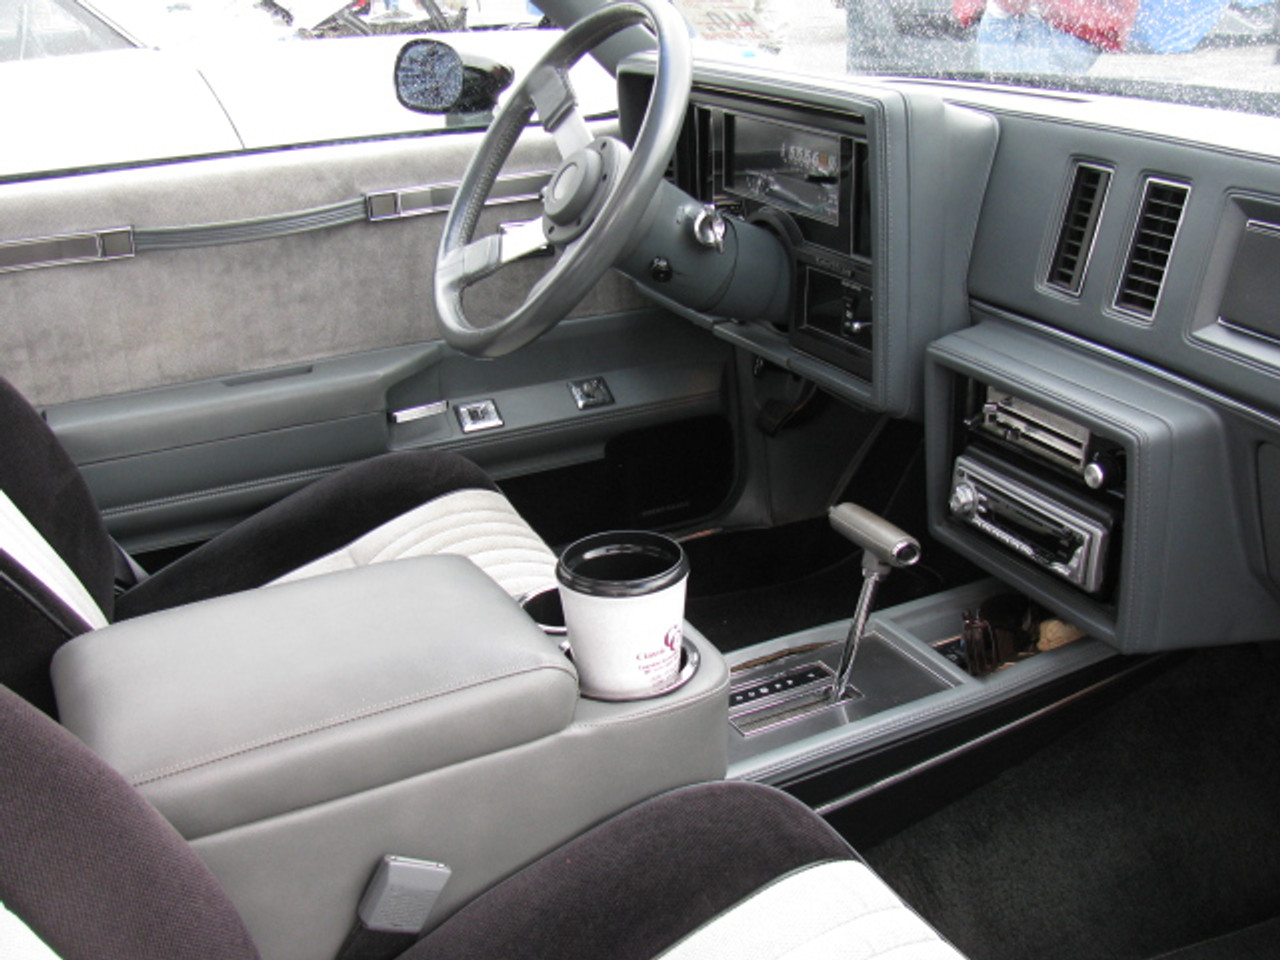 Buick Grand National, 1985-1987